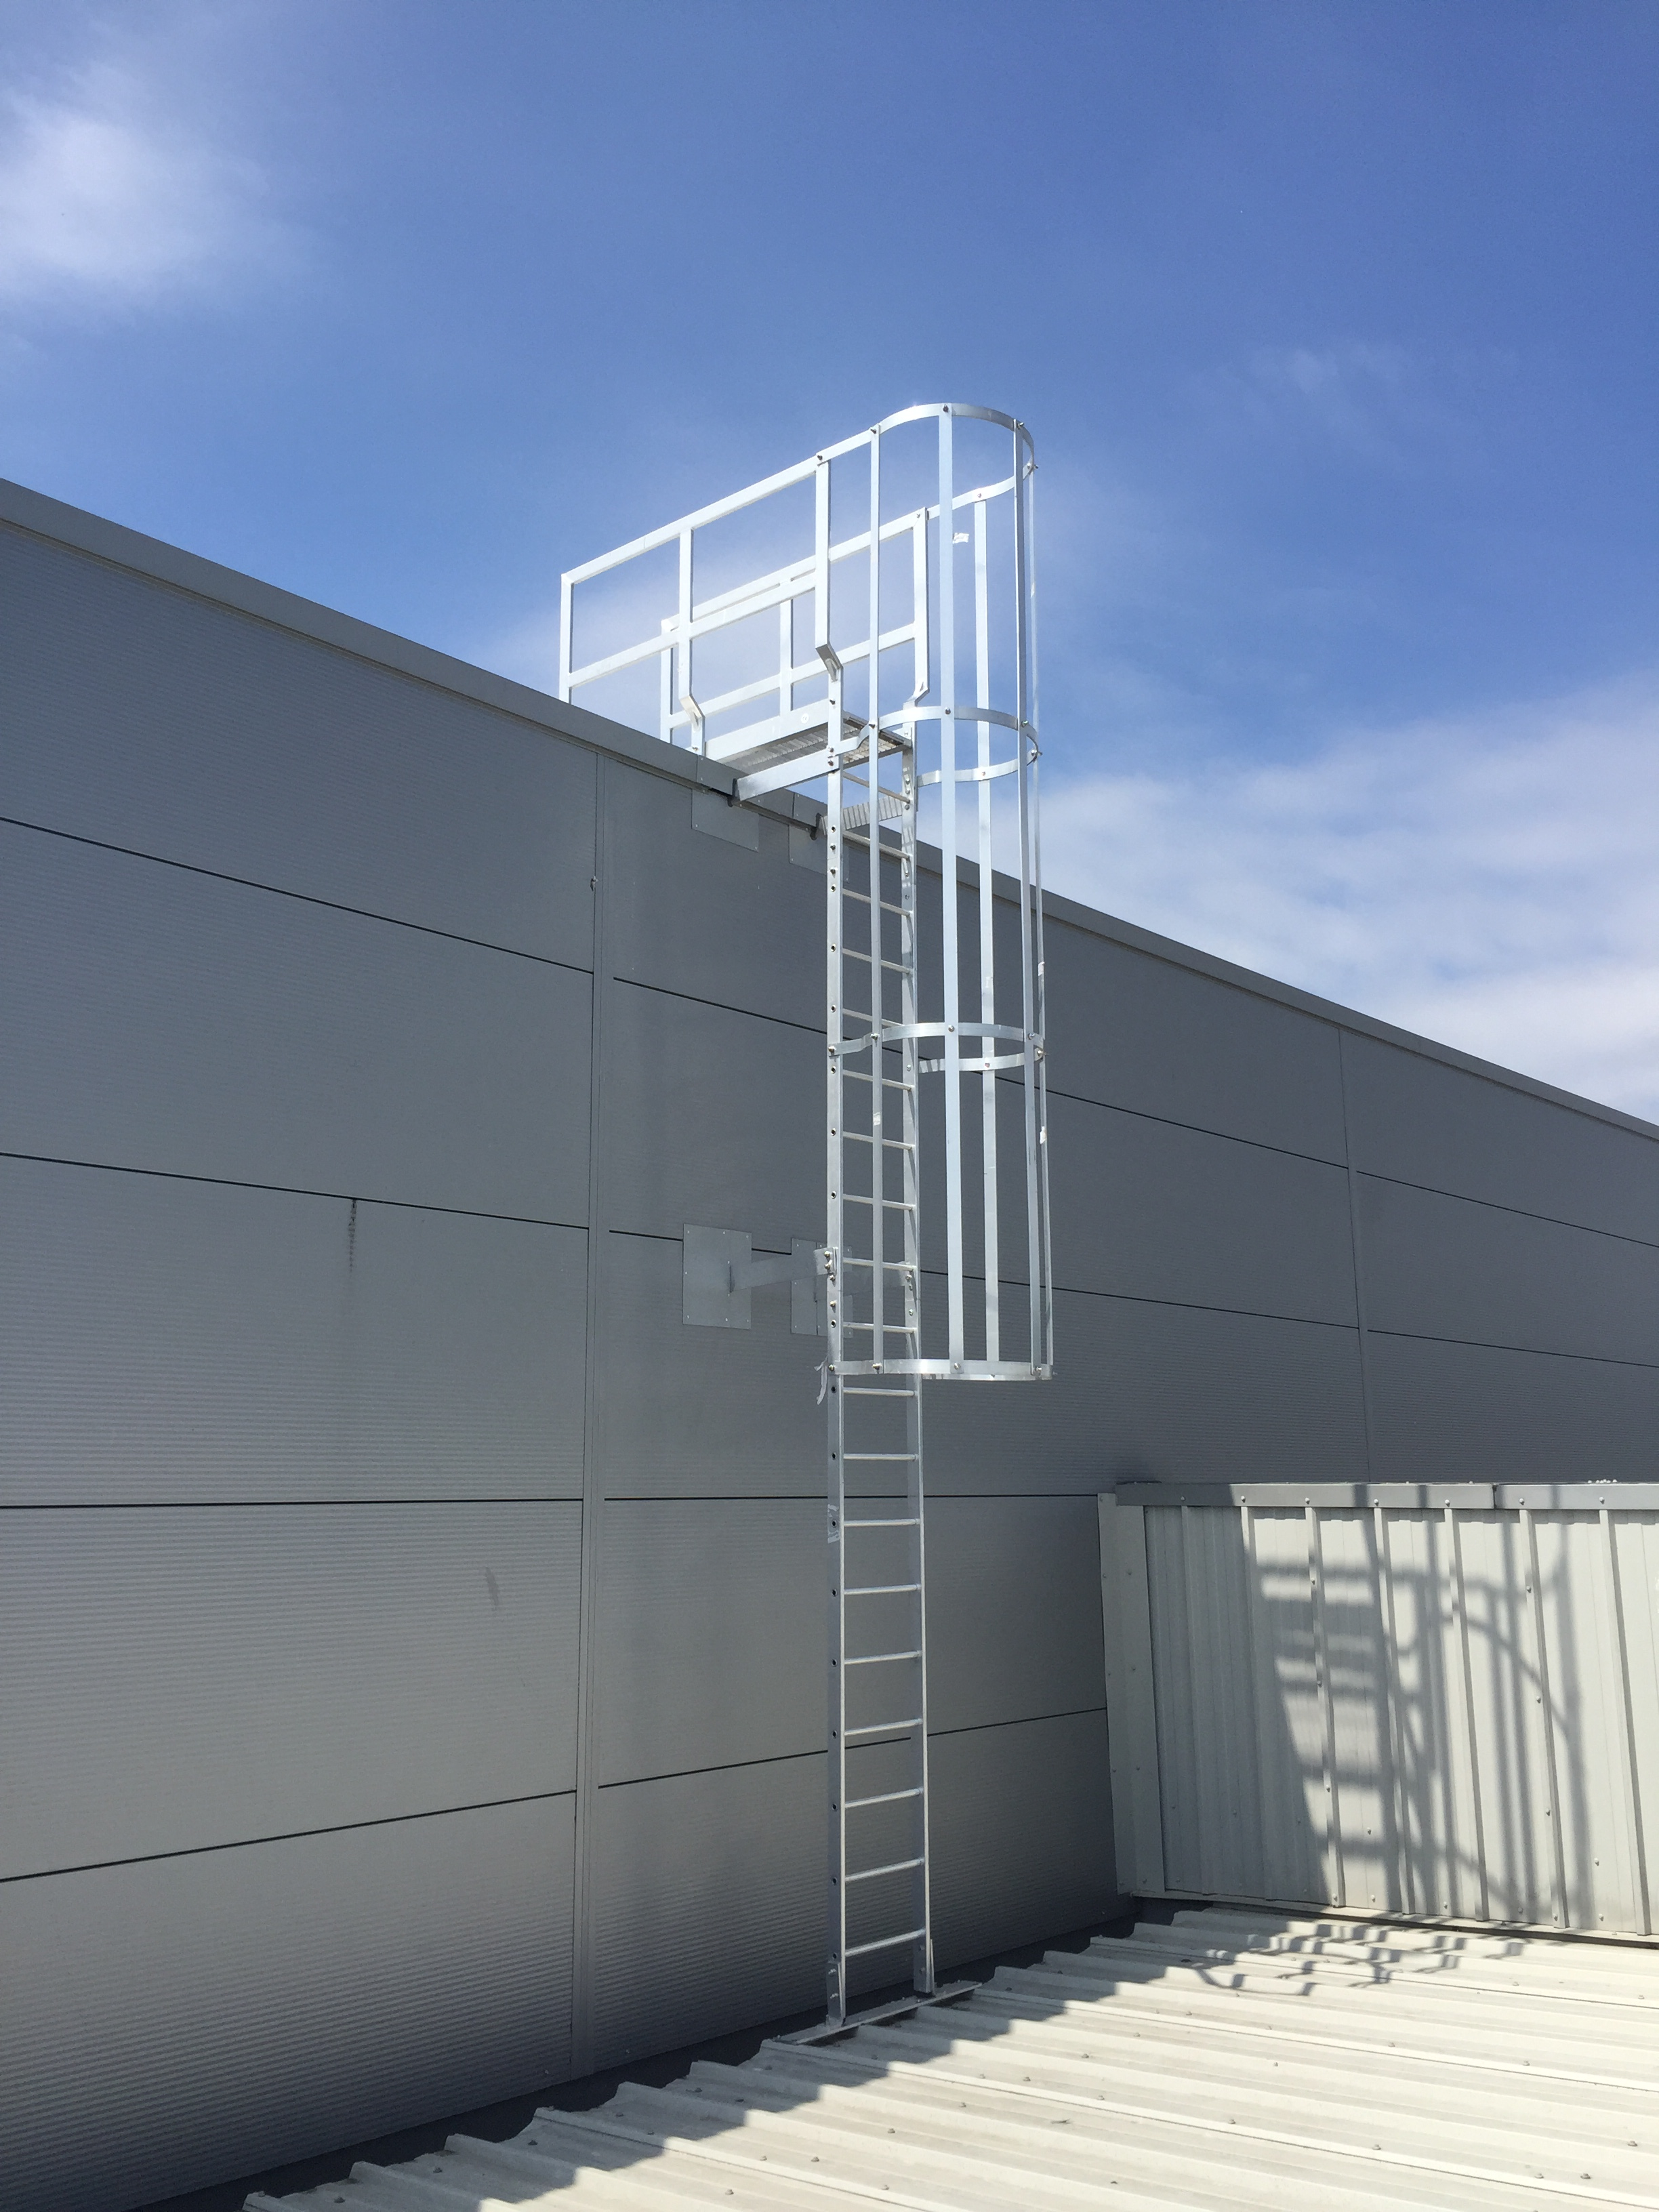 Access Ladder Safety Testing and Compliance